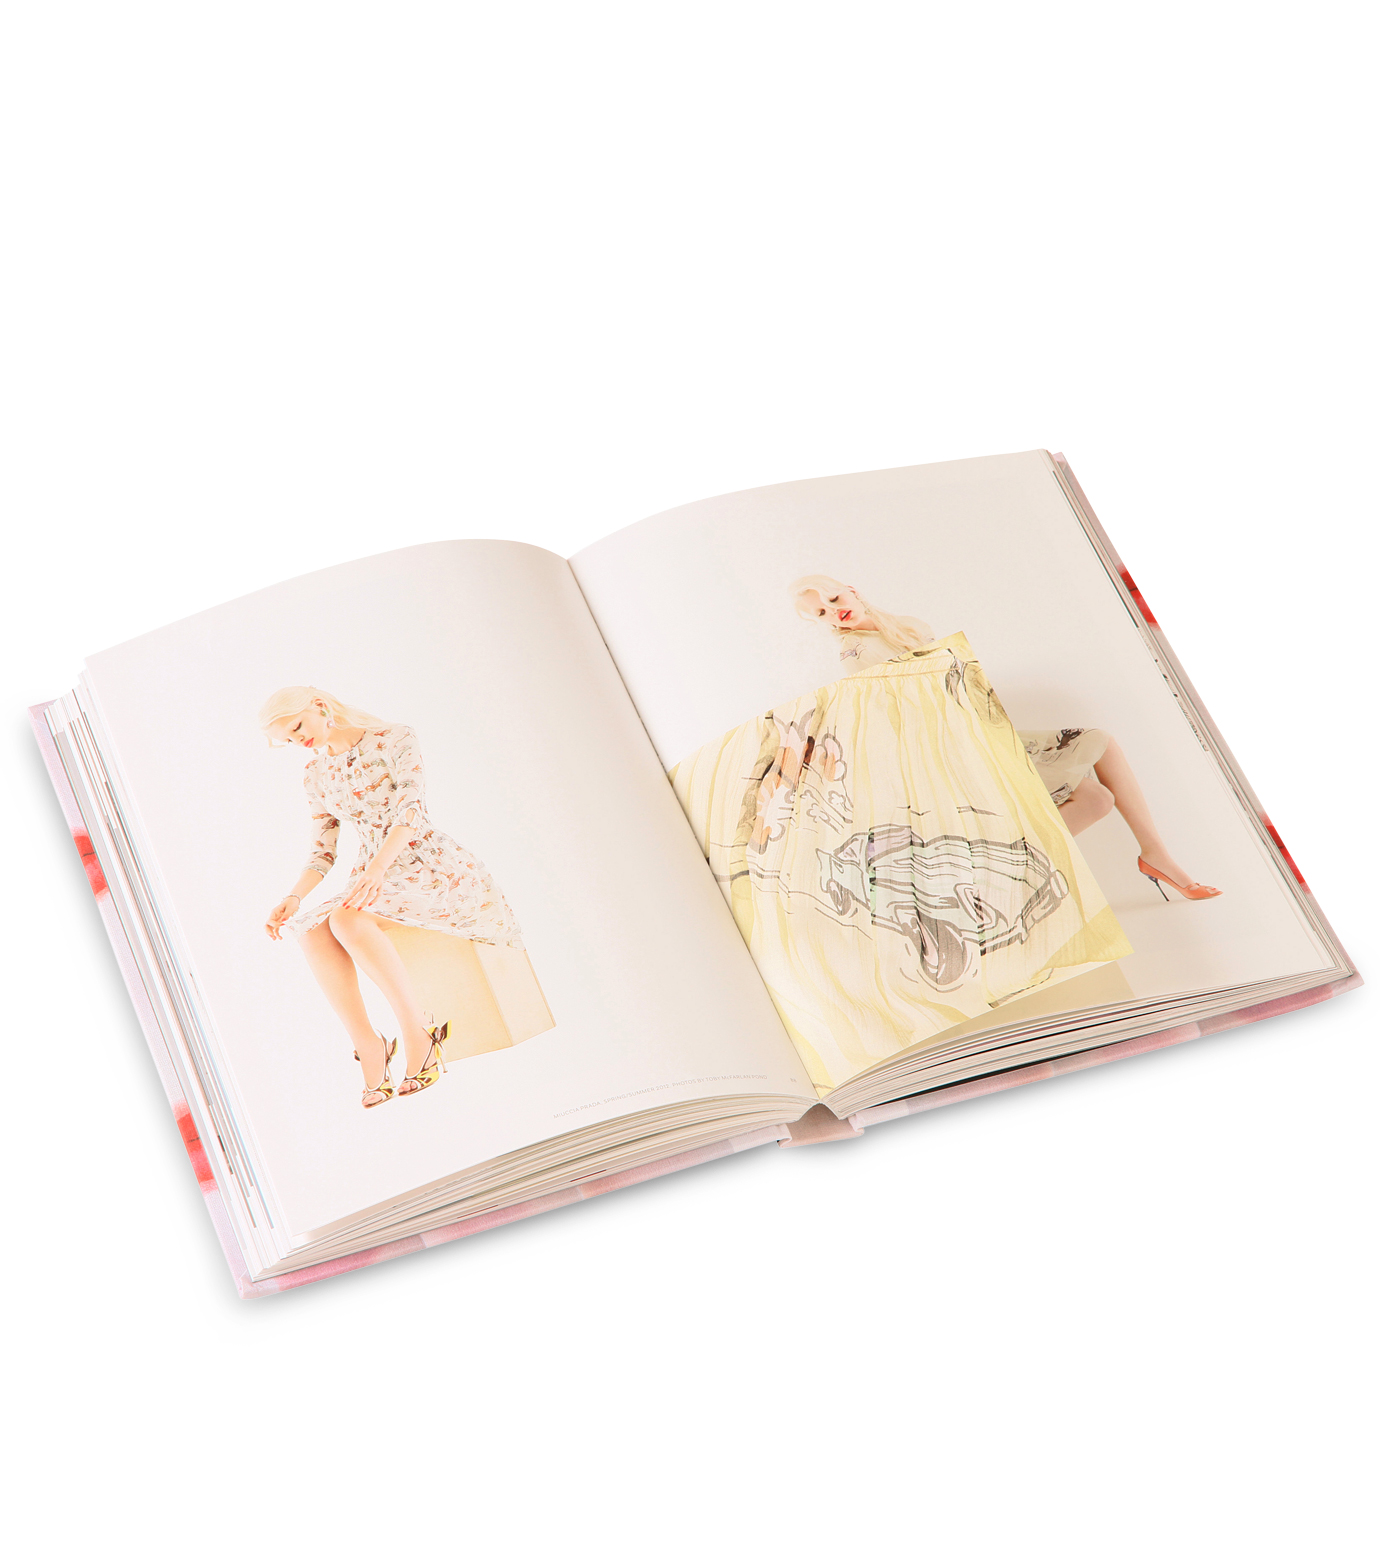 ArtBook(アートブック)のSchiaparelli and prada-RED(インテリア/OTHER-GOODS/interior/OTHER-GOODS)-300-17955-2-62 拡大詳細画像4